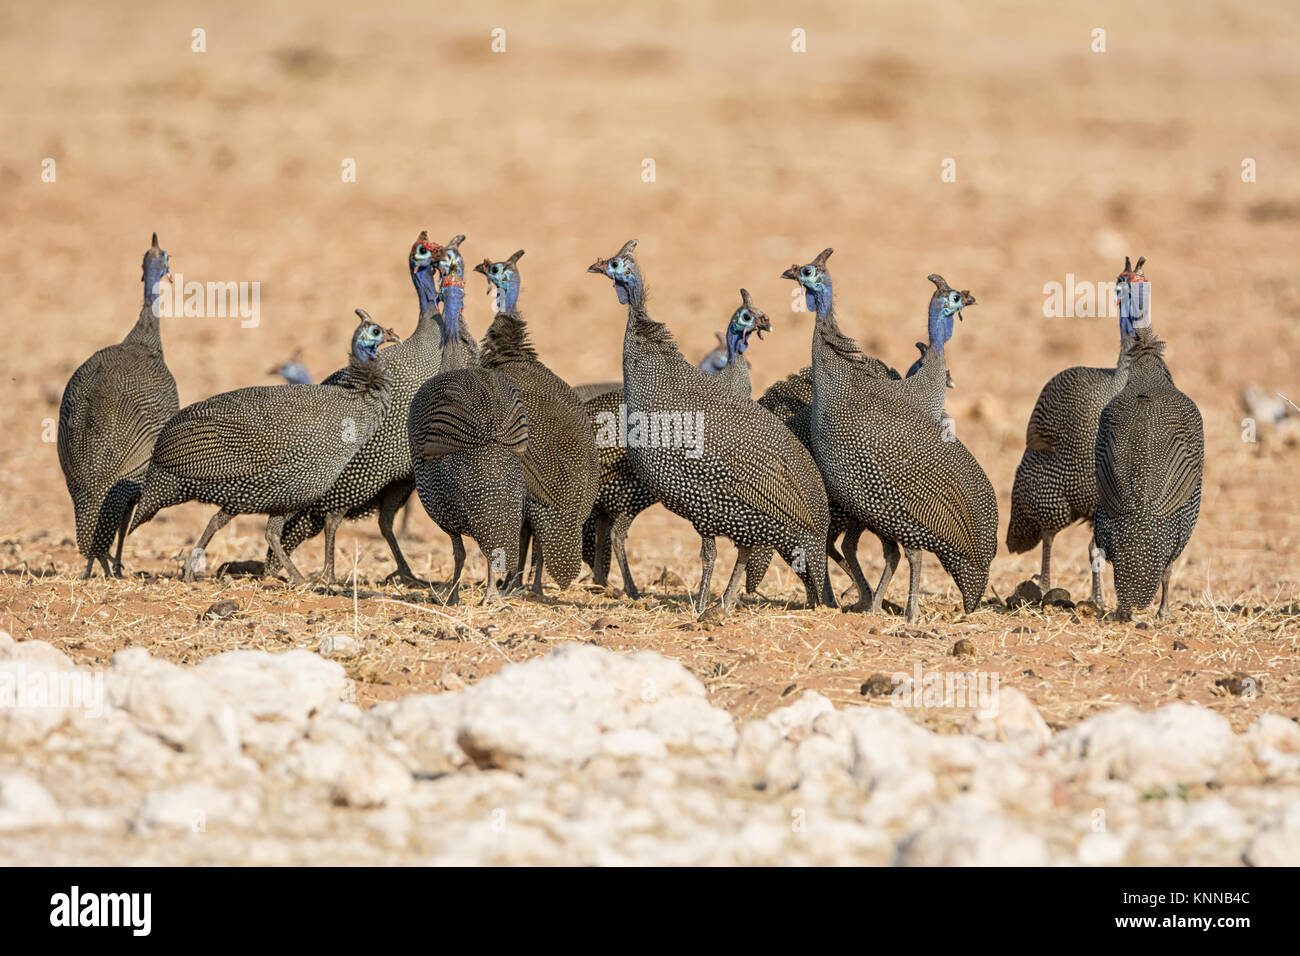 A flock of Helmeted Guineafowl in Namibian savanna - Stock Image